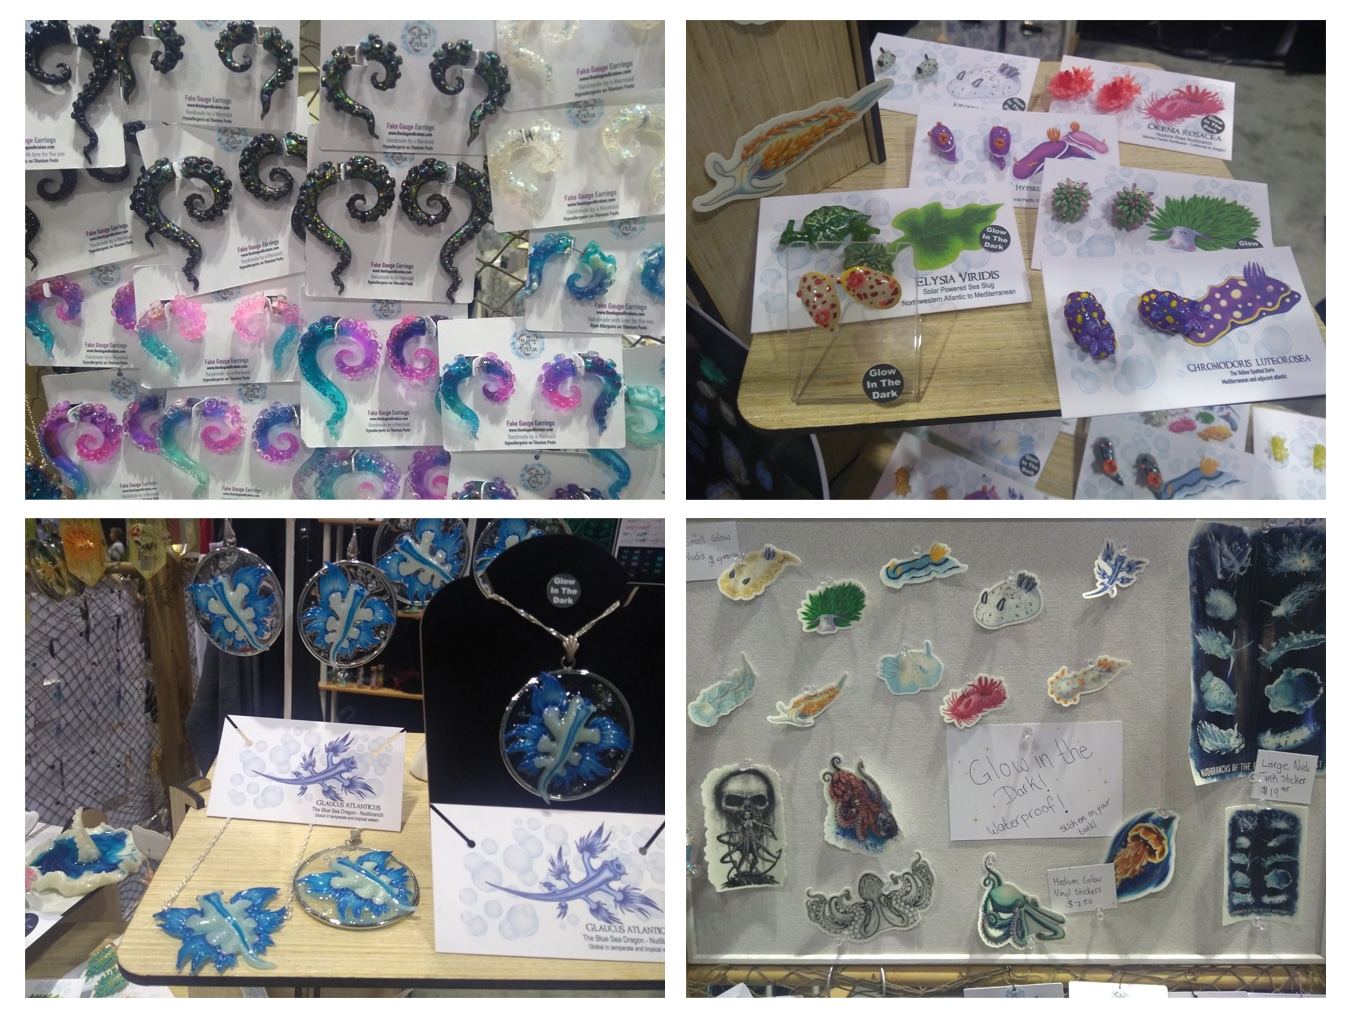 Nudis, Octos, and Bioluminescent Jewelry from the 'The Slug and Kraken'